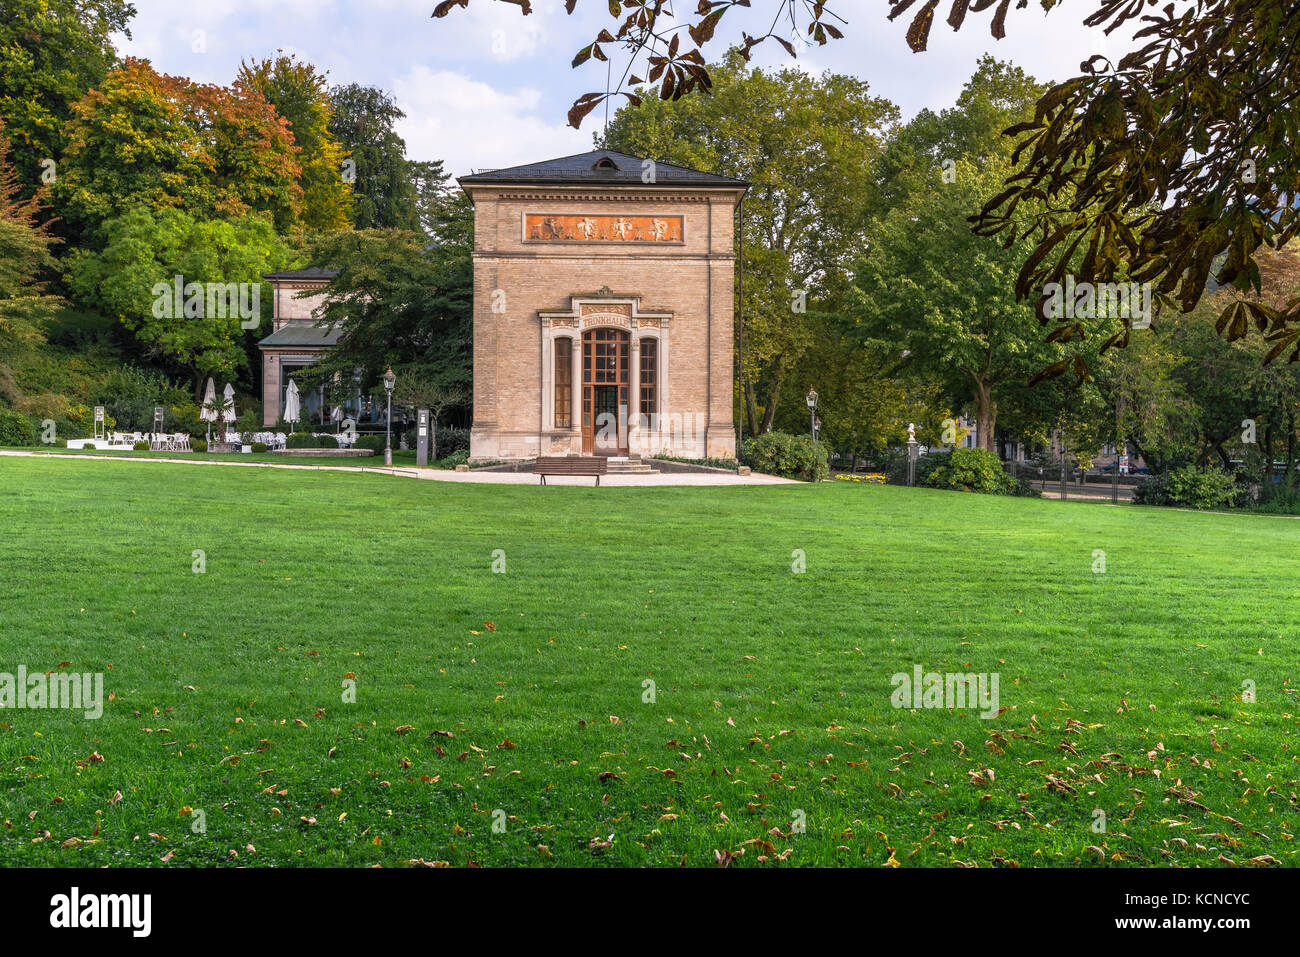 old pump house stock photos old pump house stock images alamy. Black Bedroom Furniture Sets. Home Design Ideas